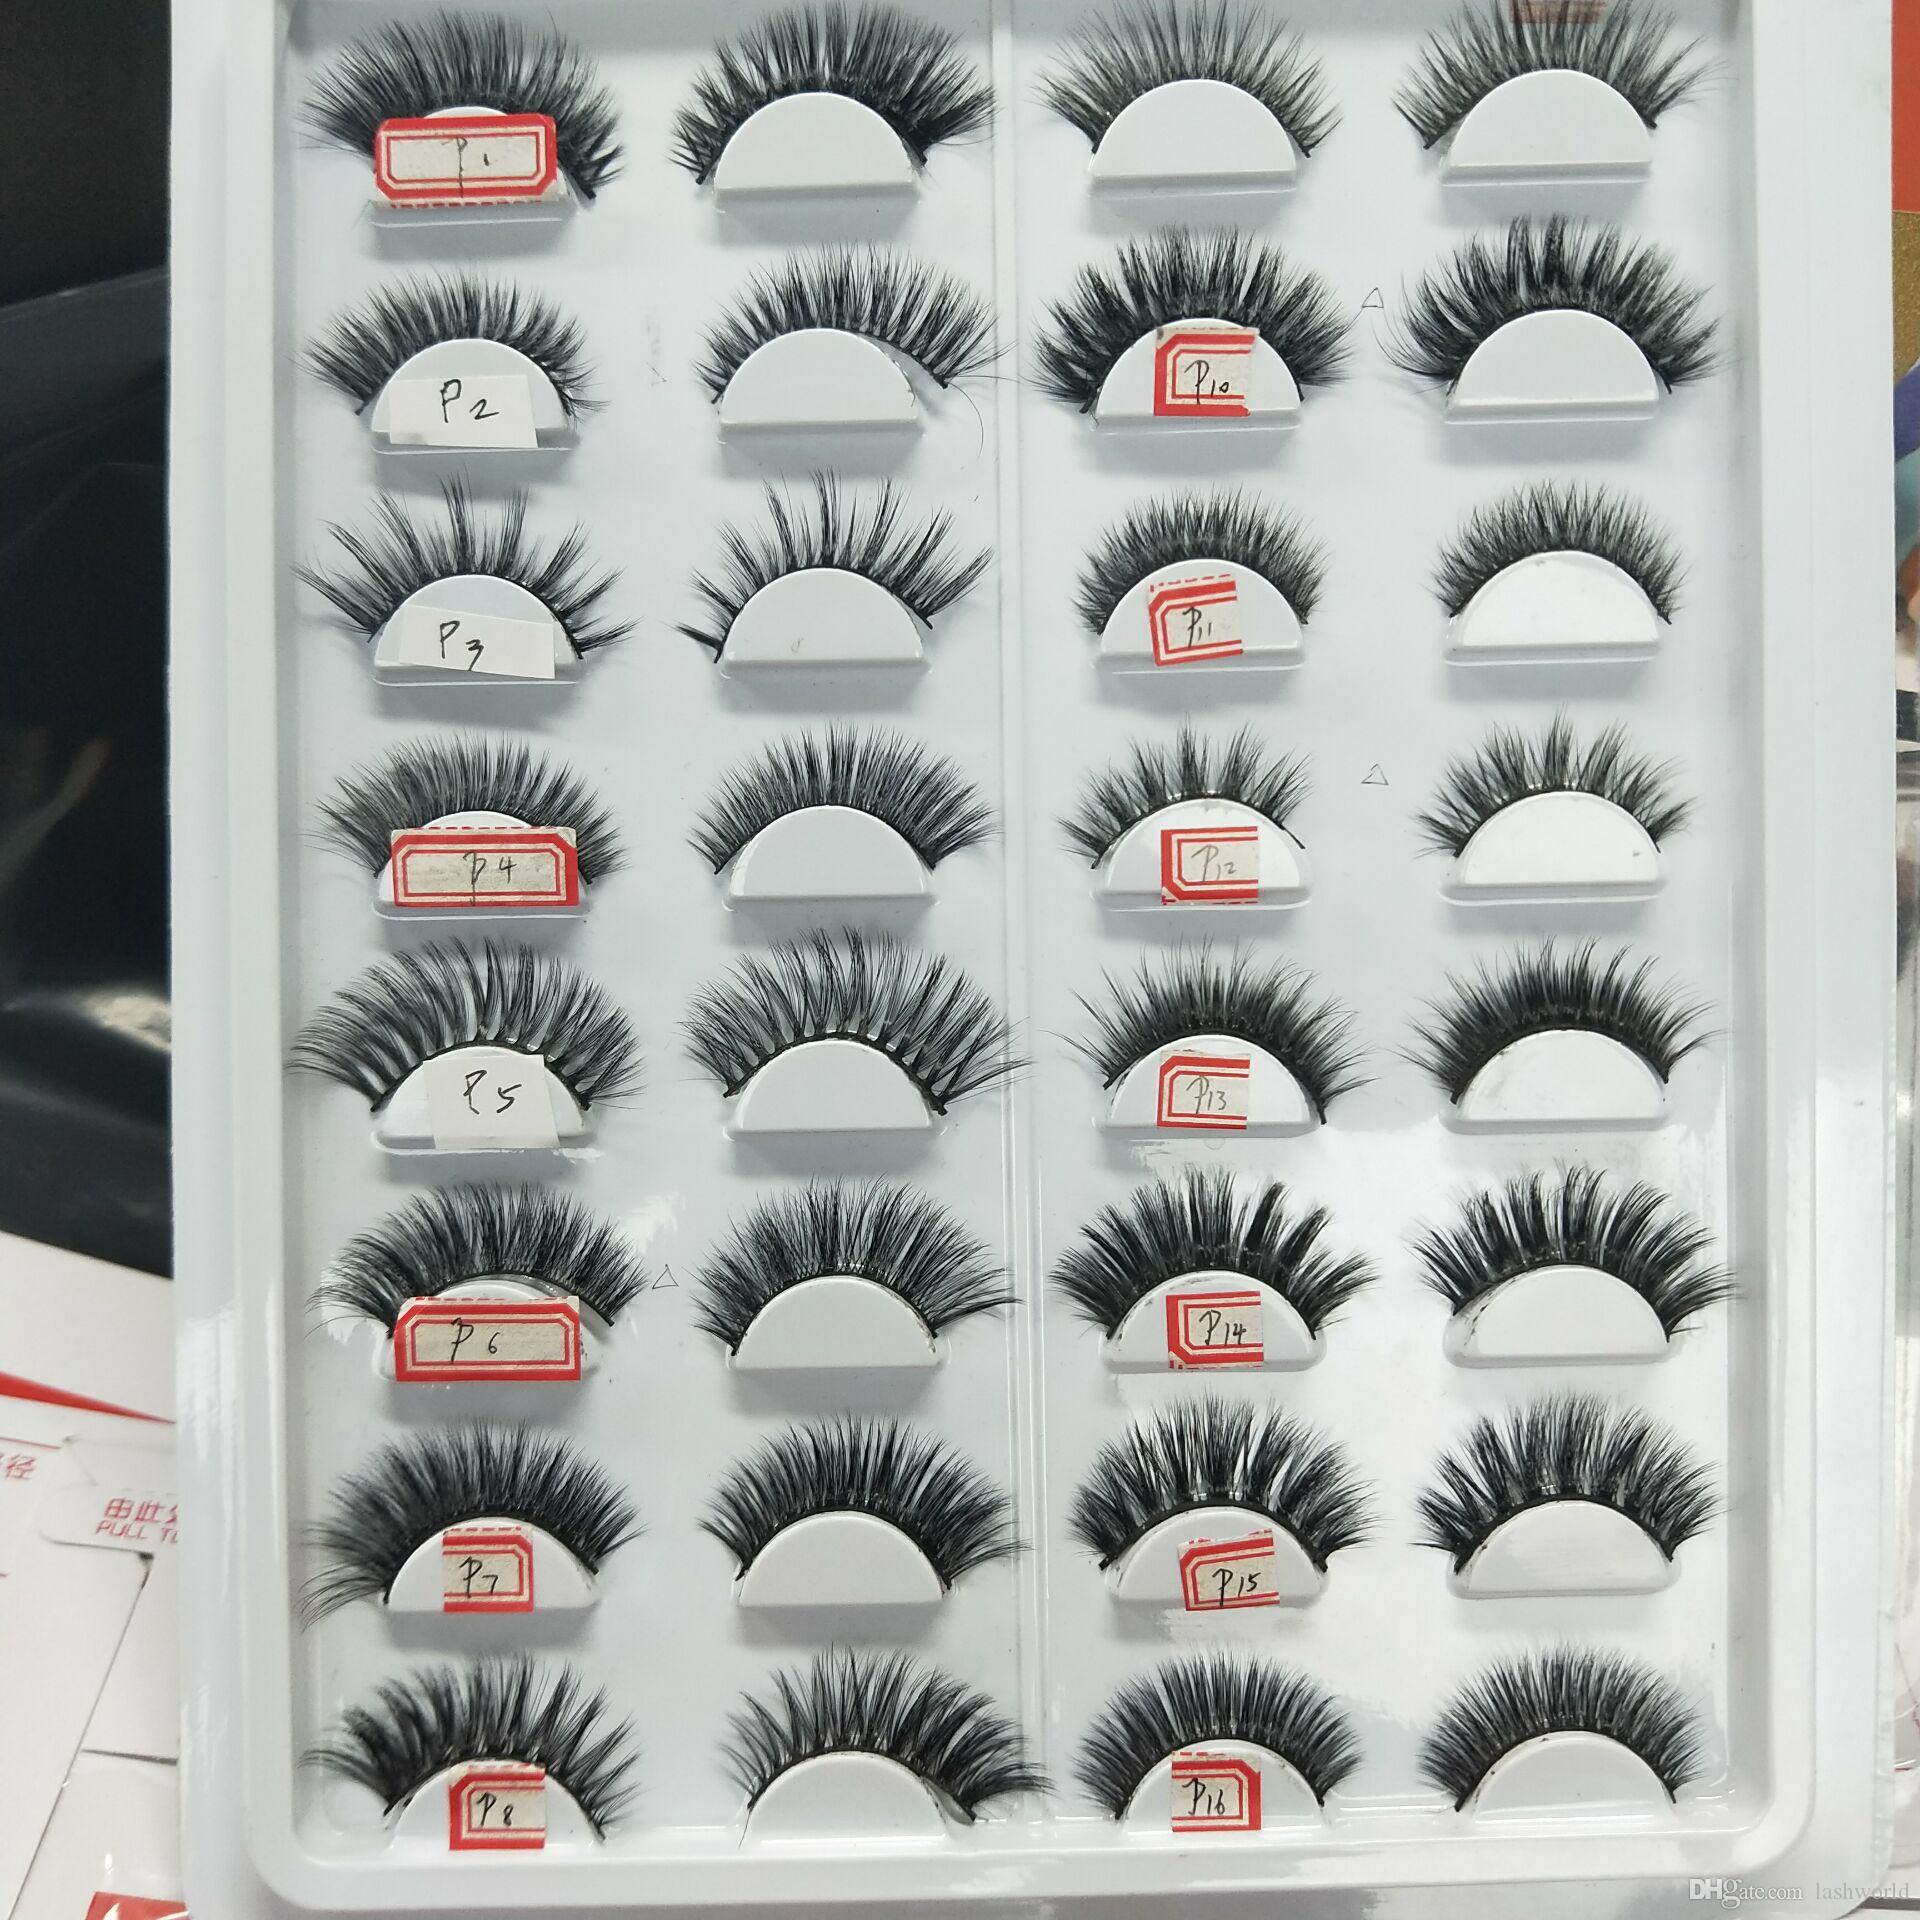 Seashine lollipop packaging silk eyelashes customer label stickers are Available high quality synthetic material lashes